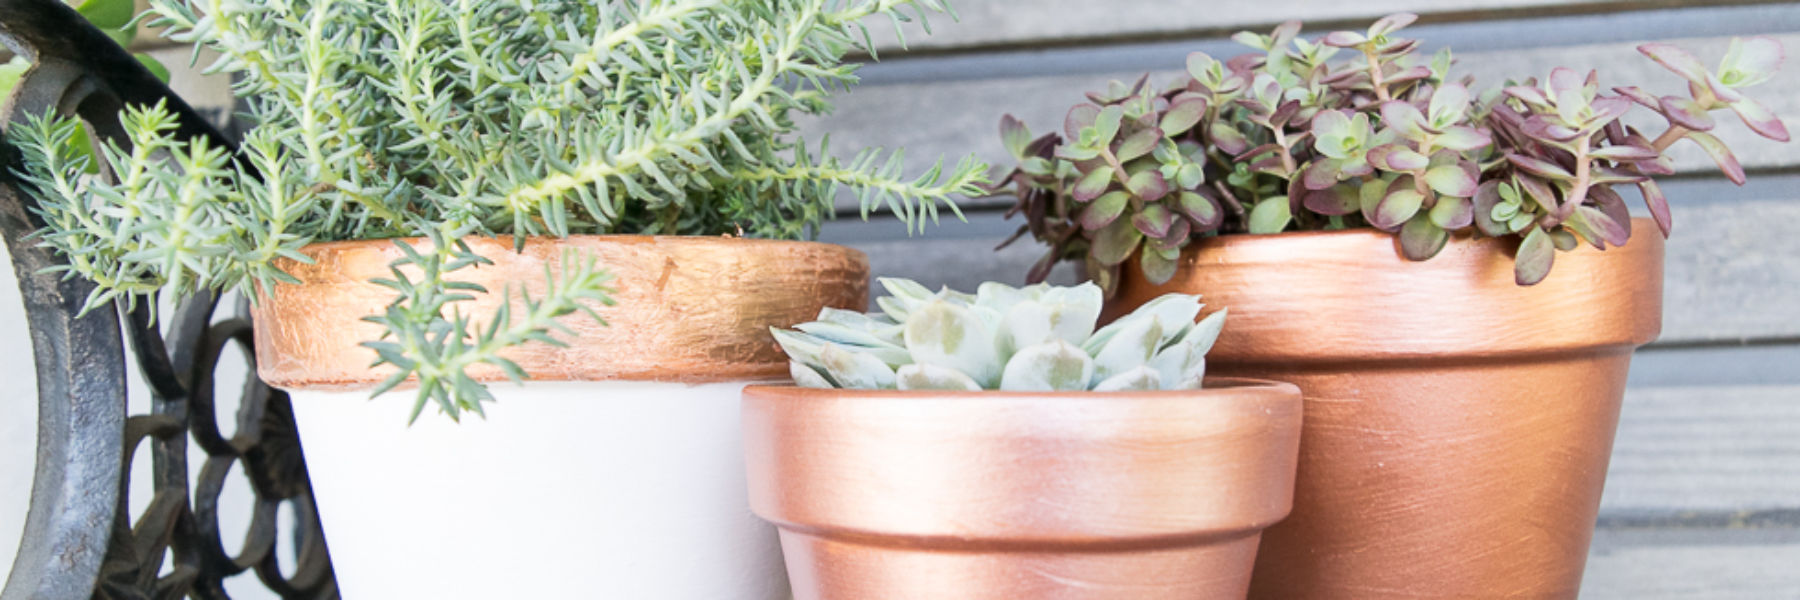 DIY-terra-cotta-planter-transformation